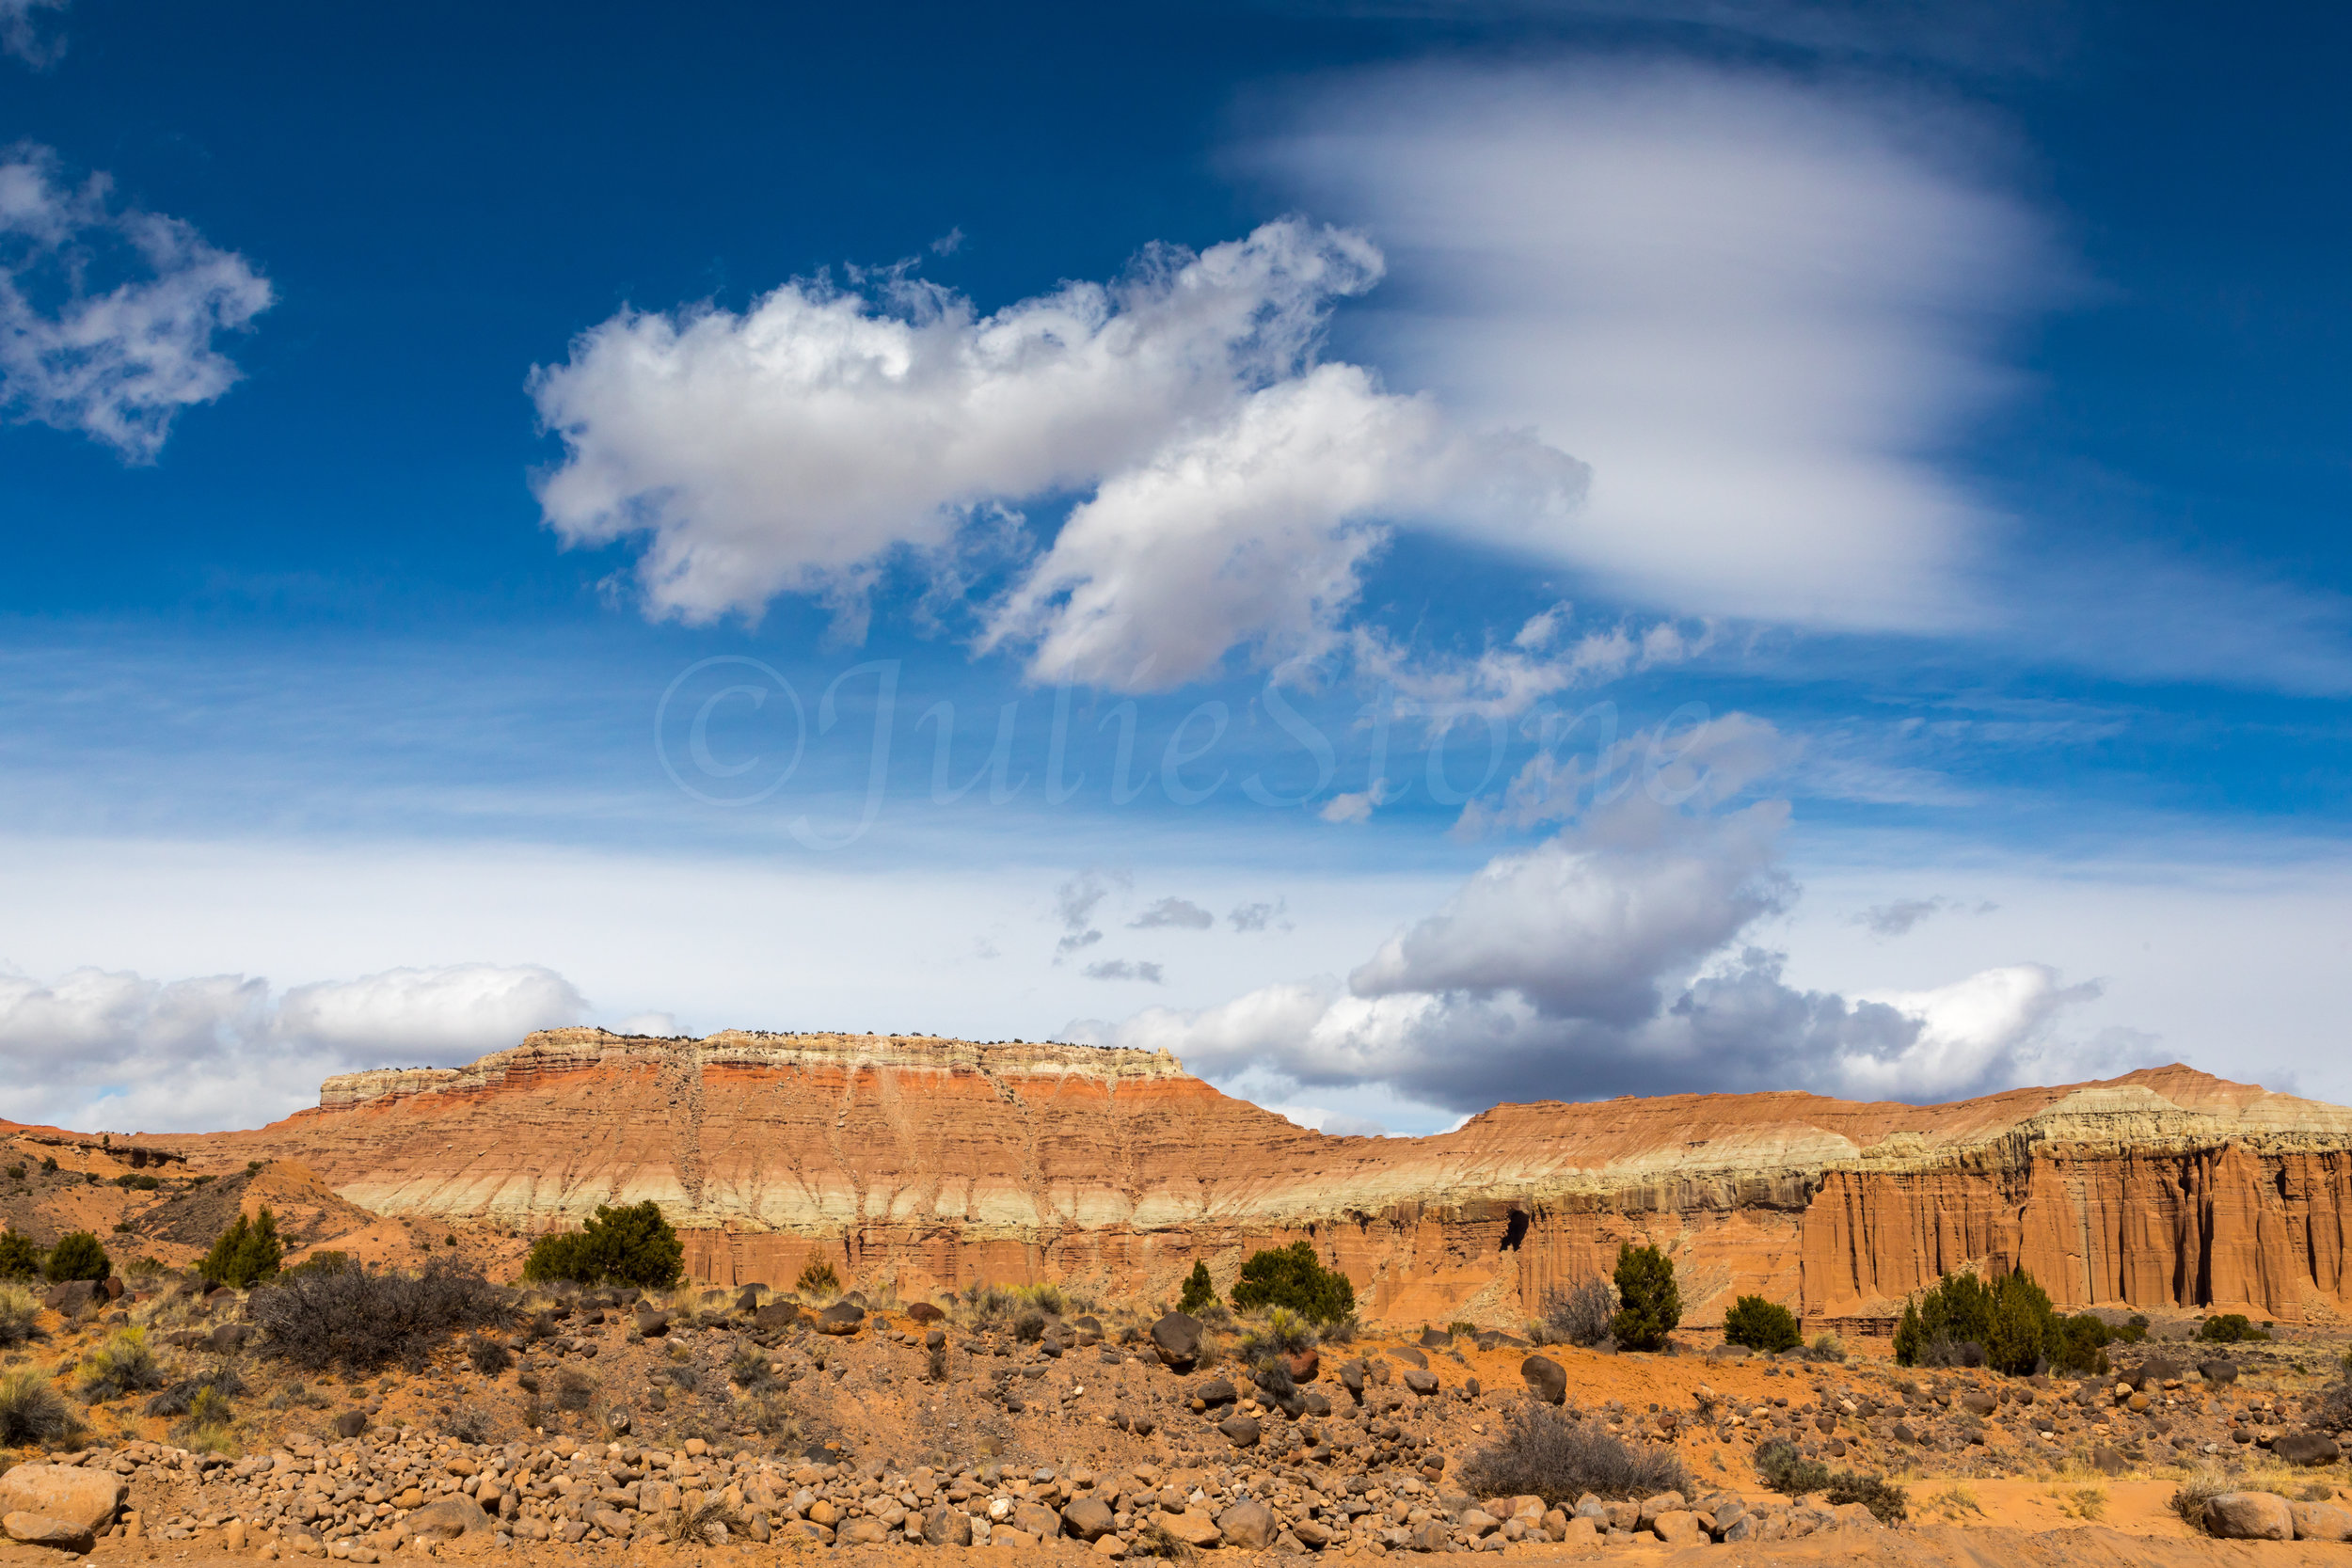 Capitol Reef National Park, Image # 1800